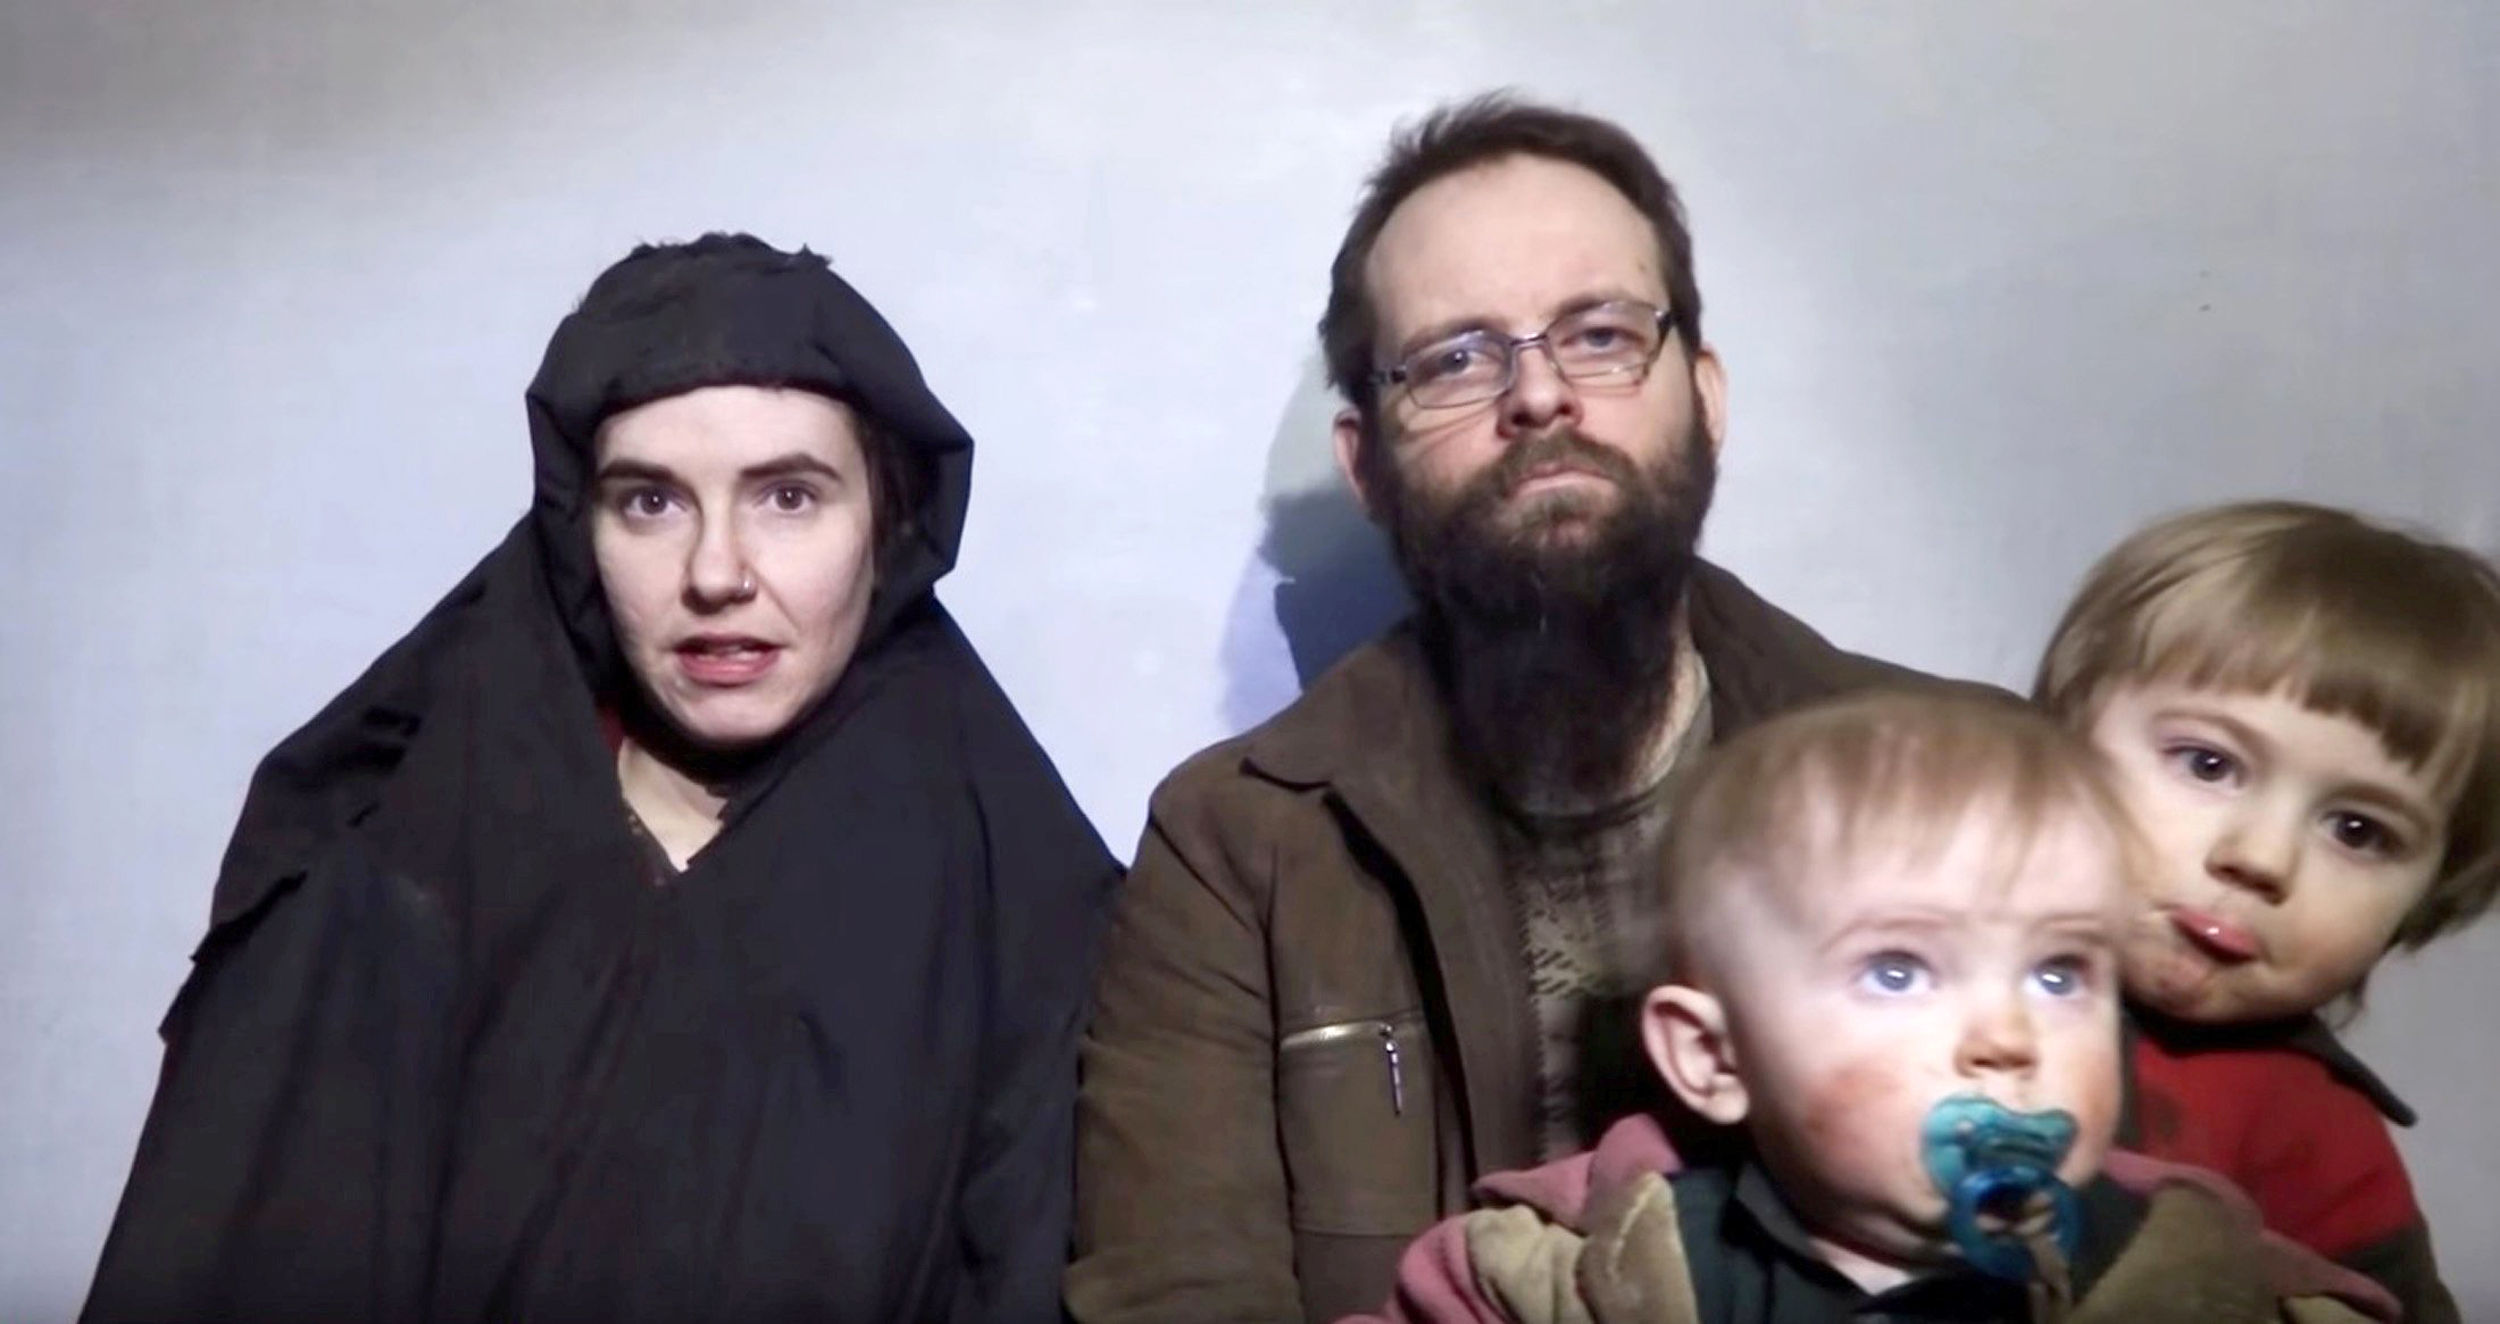 Image: A still image from a video posted by the Taliban on social media on Dec. 19, 2016 shows American Caitlan Coleman speaking next to her Canadian husband Joshua Boyle and their two sons.